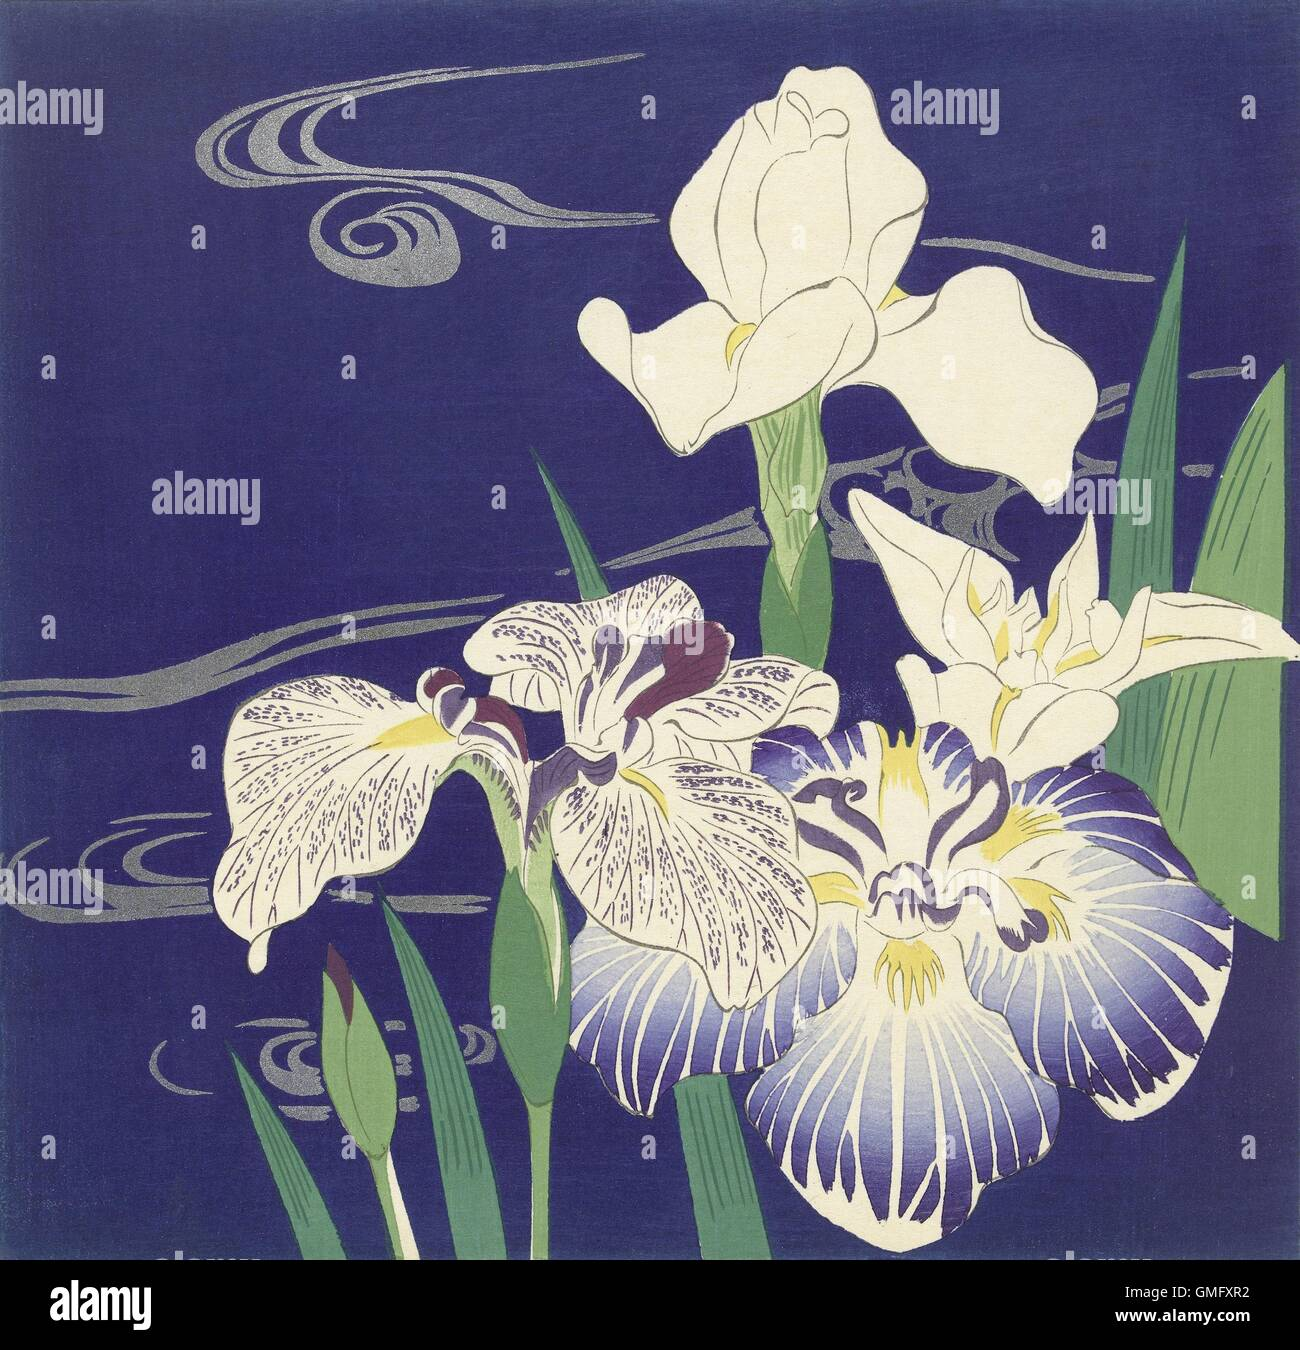 Irises By Tsukioka Kogyo C 1890 1900 Japanese Print Color Woodcut Blooming Against A Deep Blue Background Depicting Water BSLOC 2016 2 283